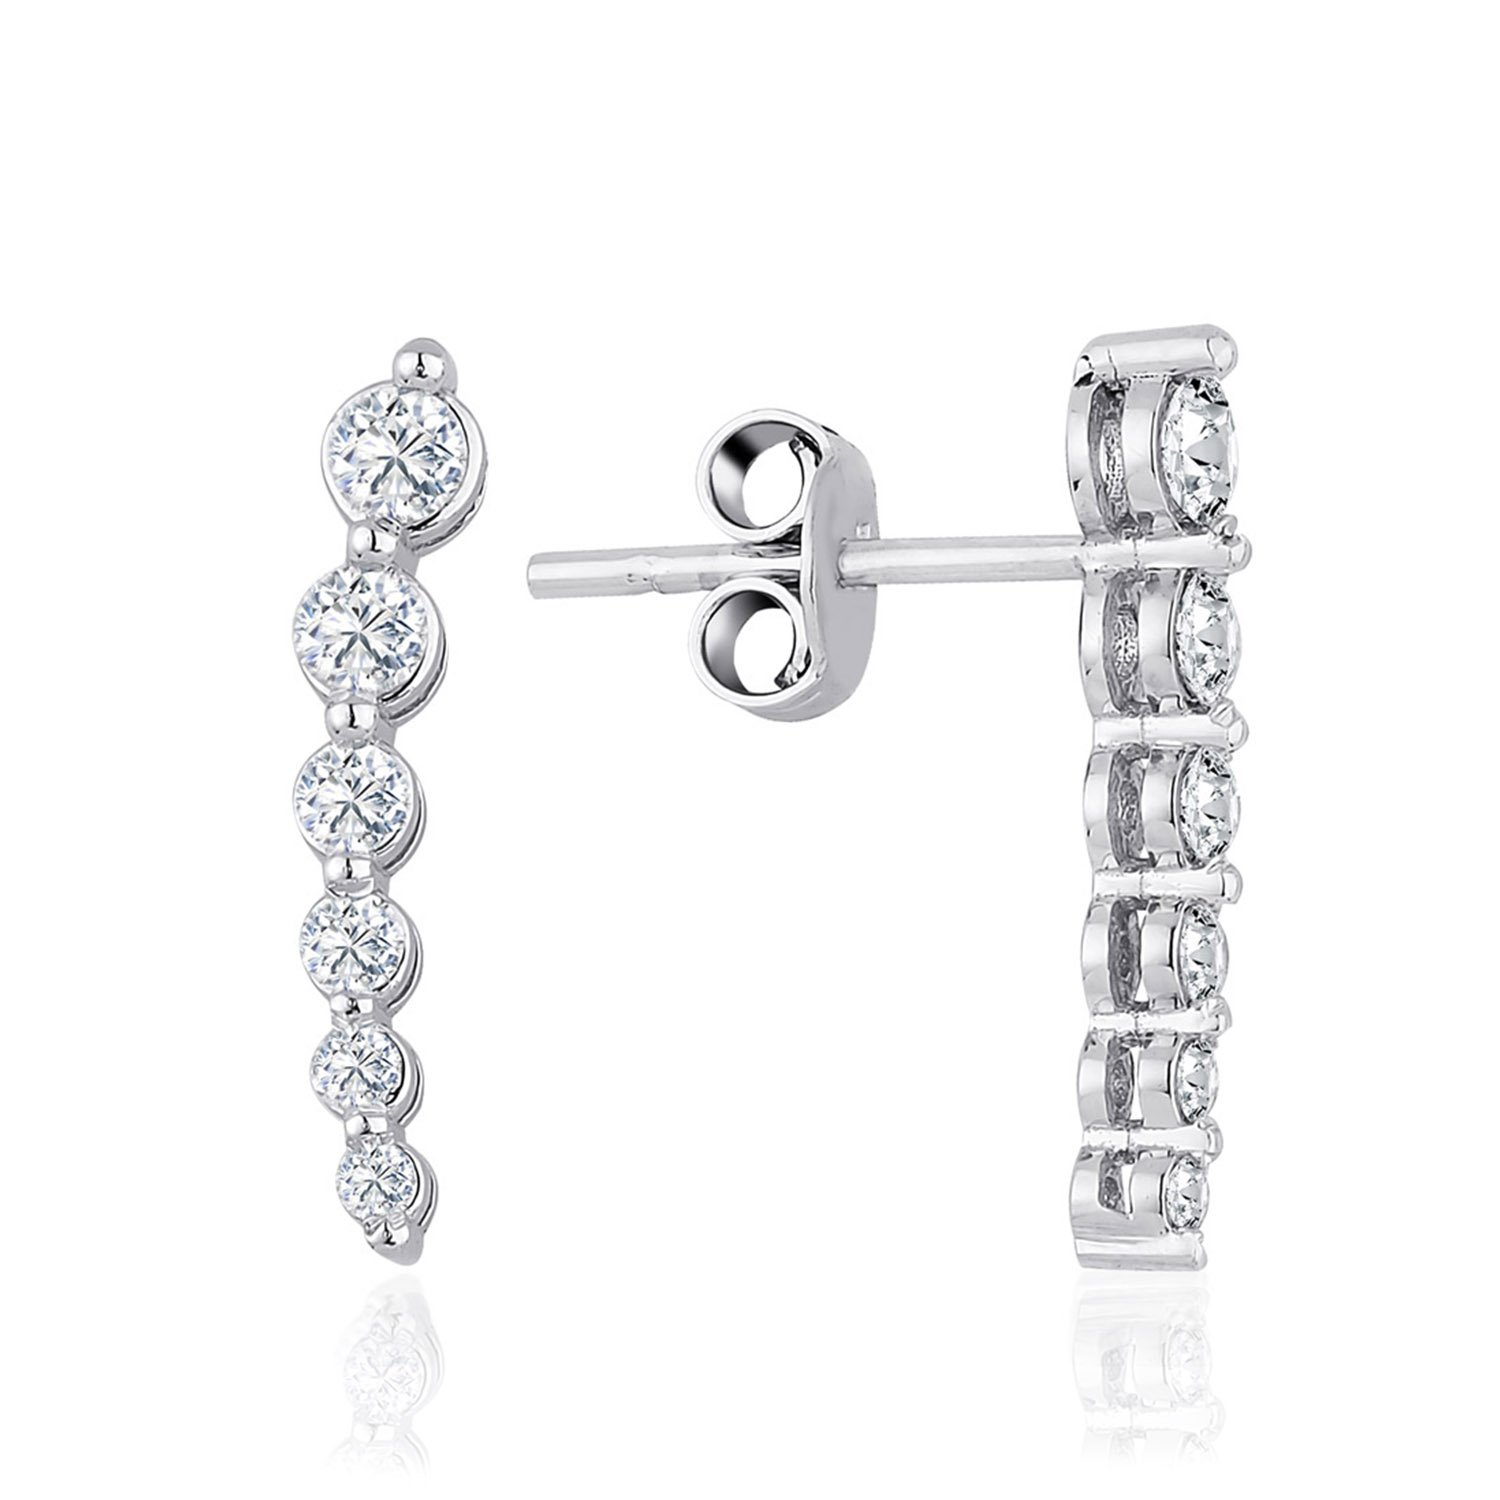 Trend Diamond Earrings